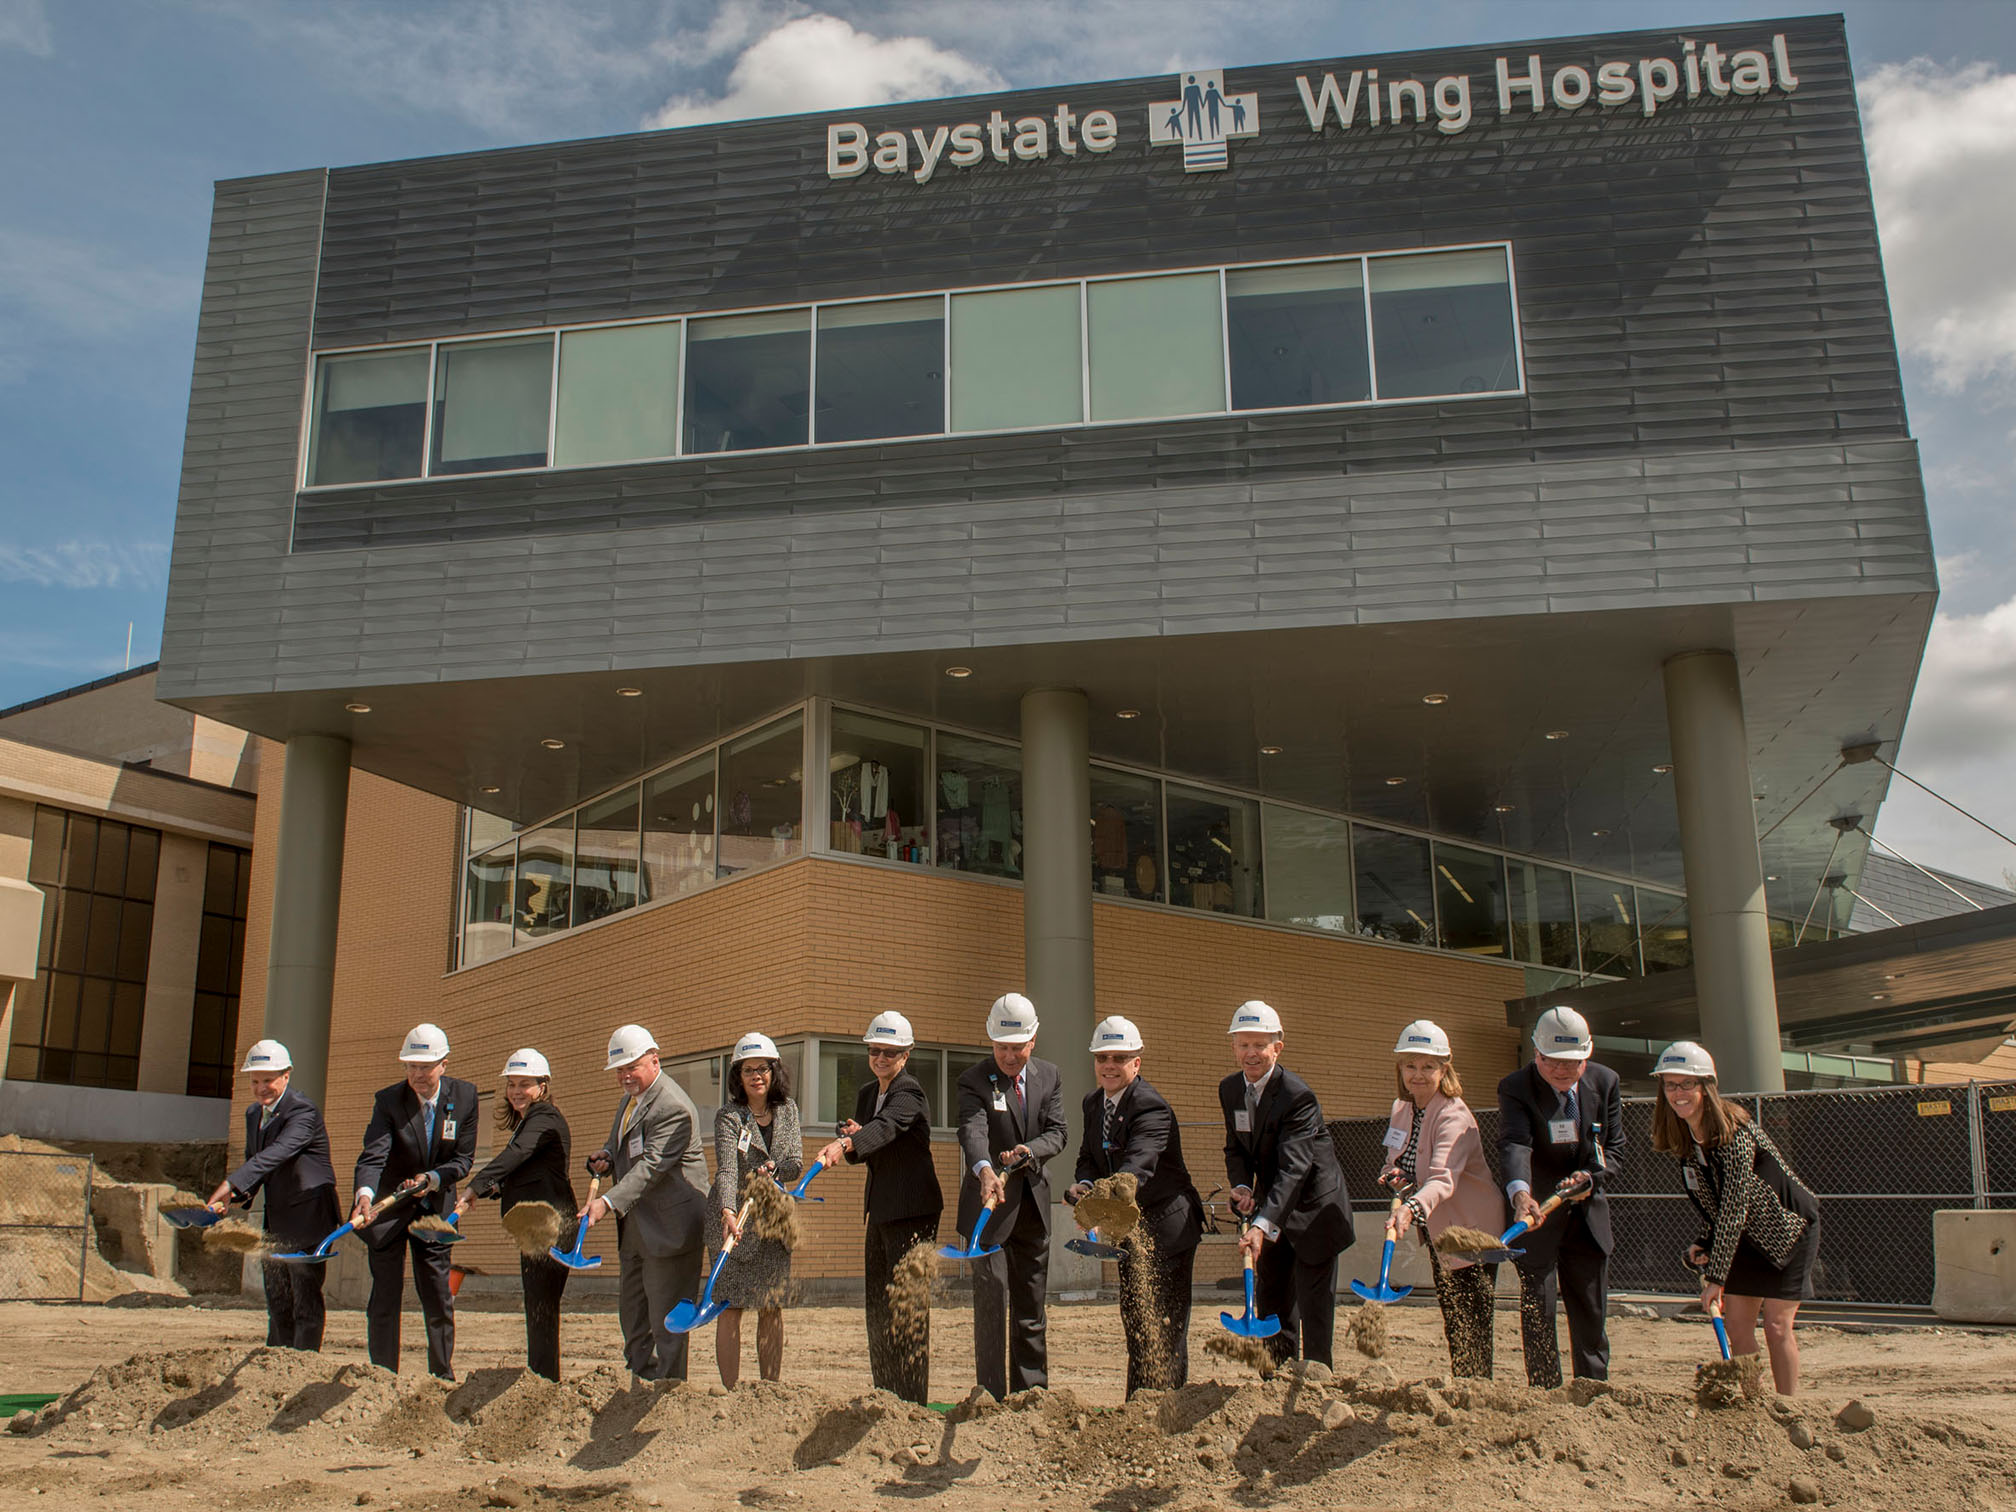 Photo - Executive Groundbreaking Group with Shovels at Baystate Wing Hospital Emergency Department Site